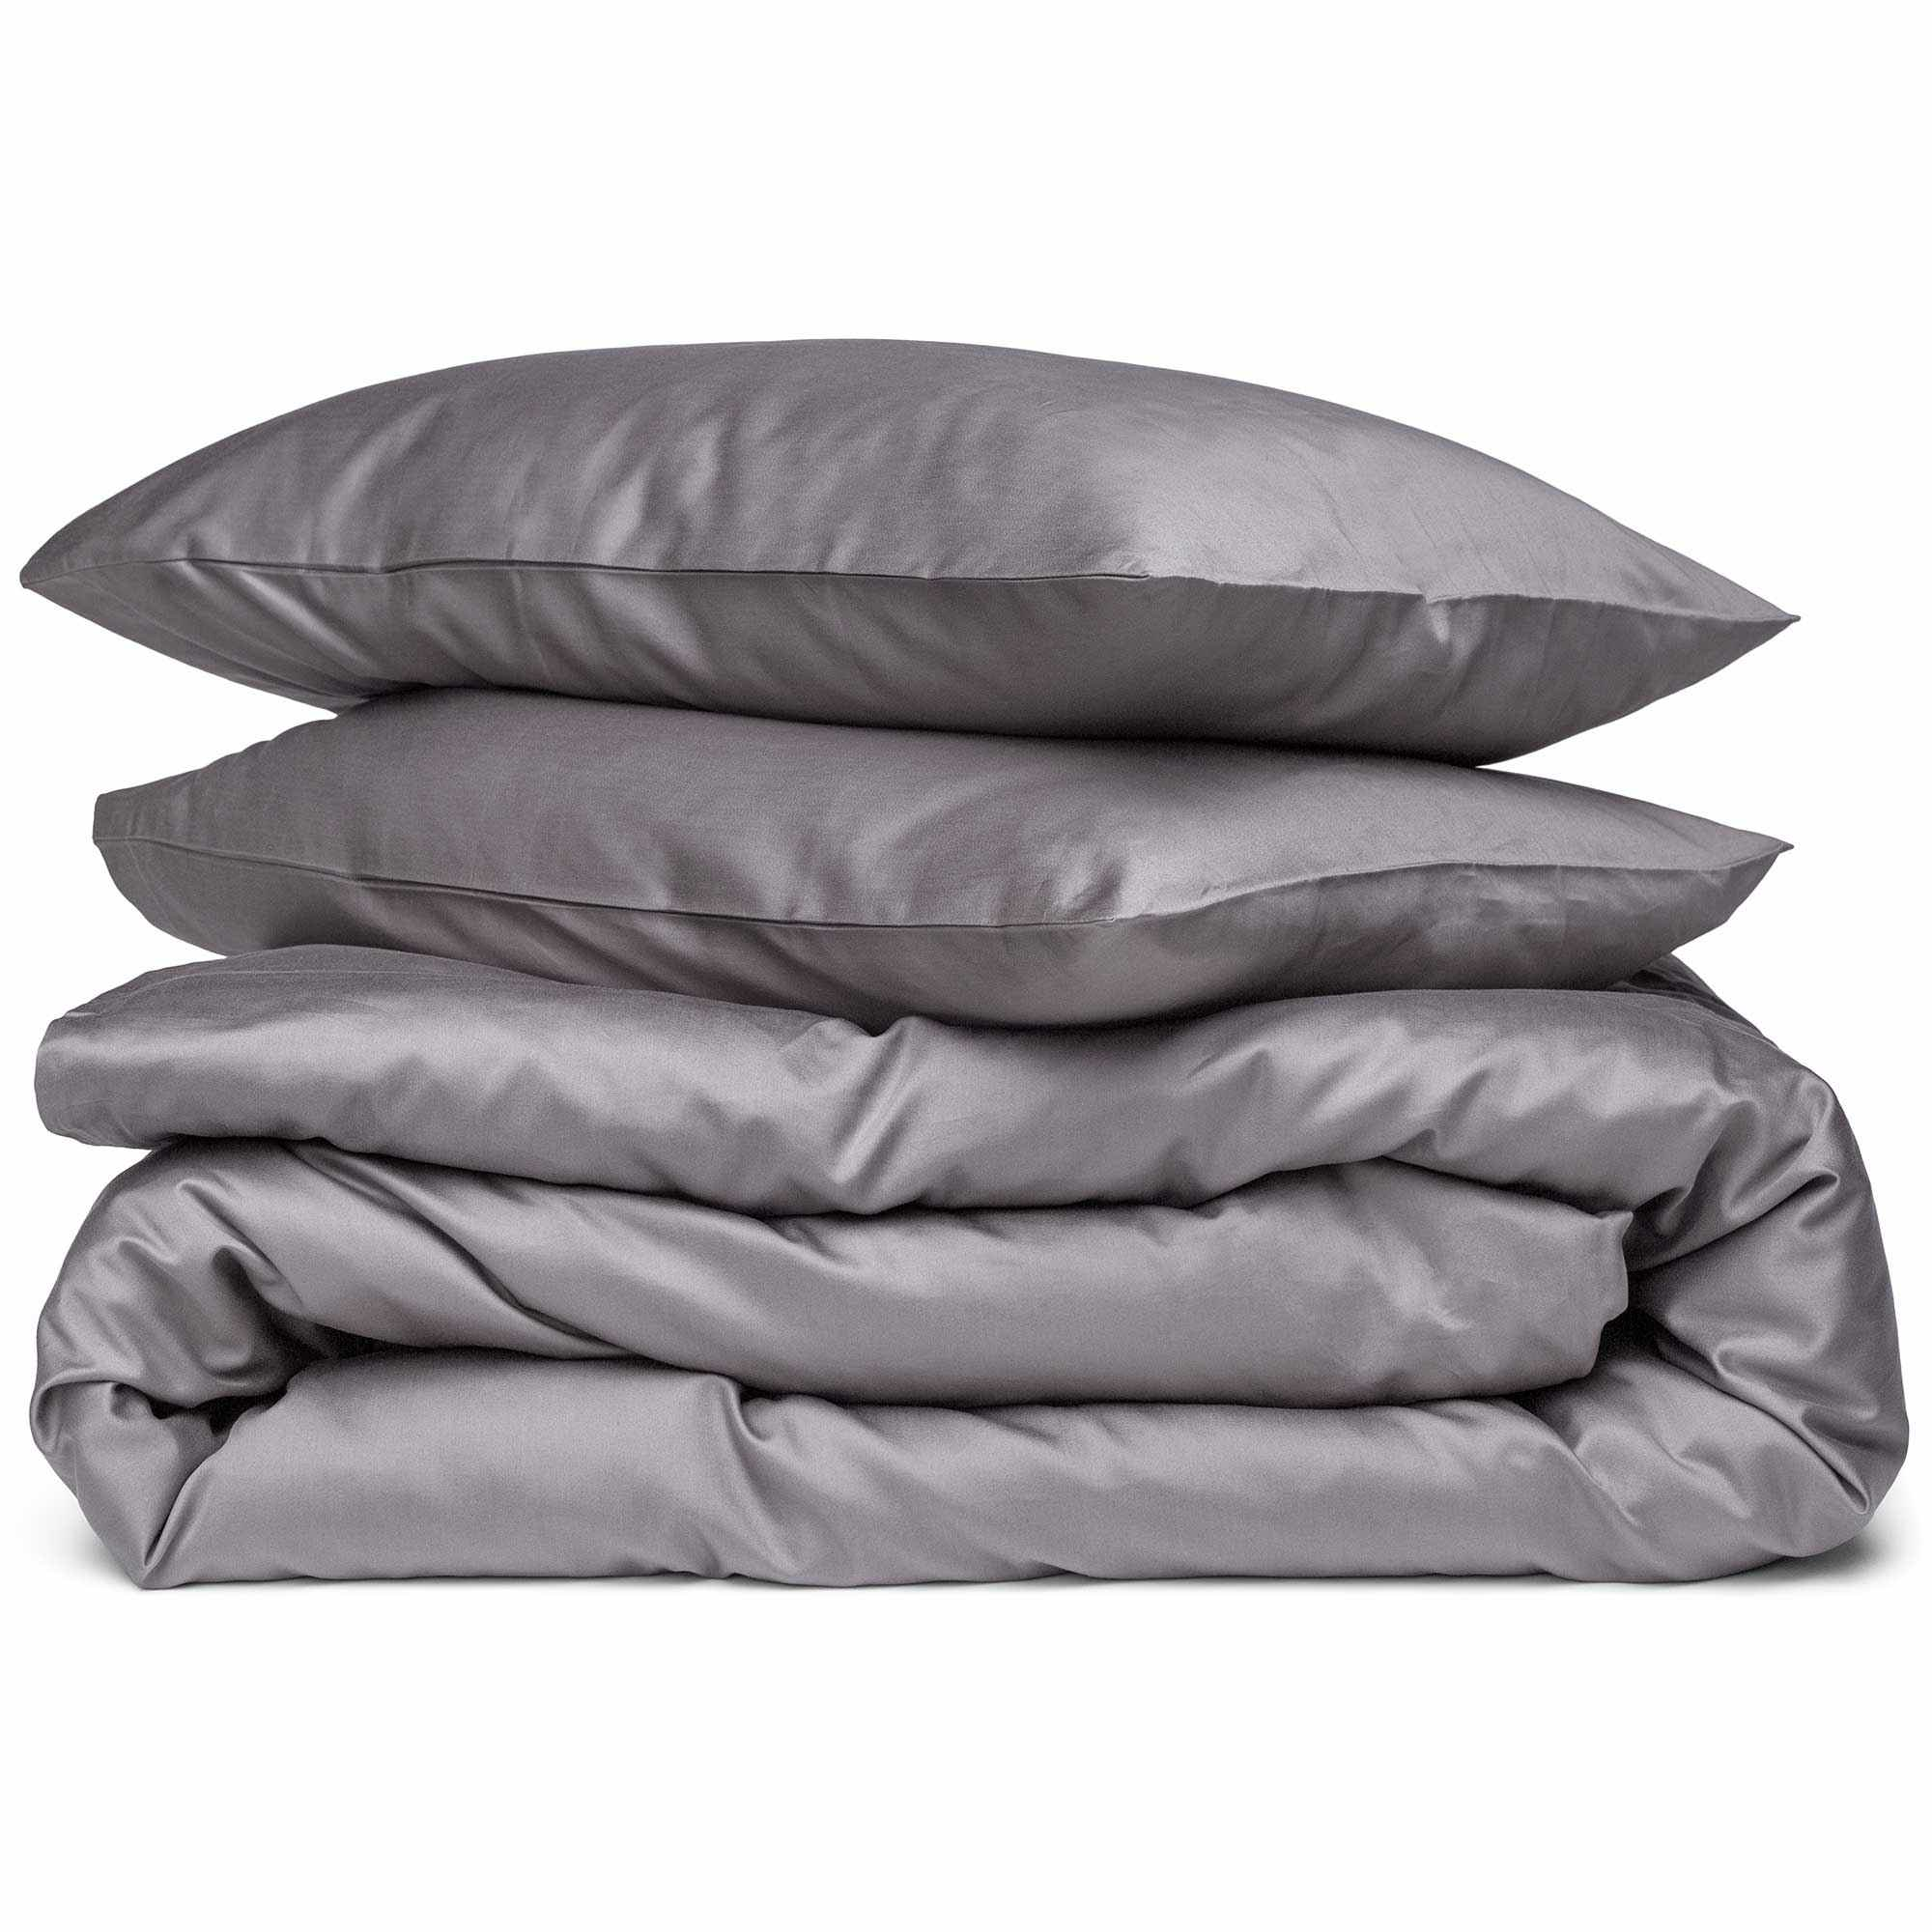 dark-gray-luxury-organic-cotton-duvet-set